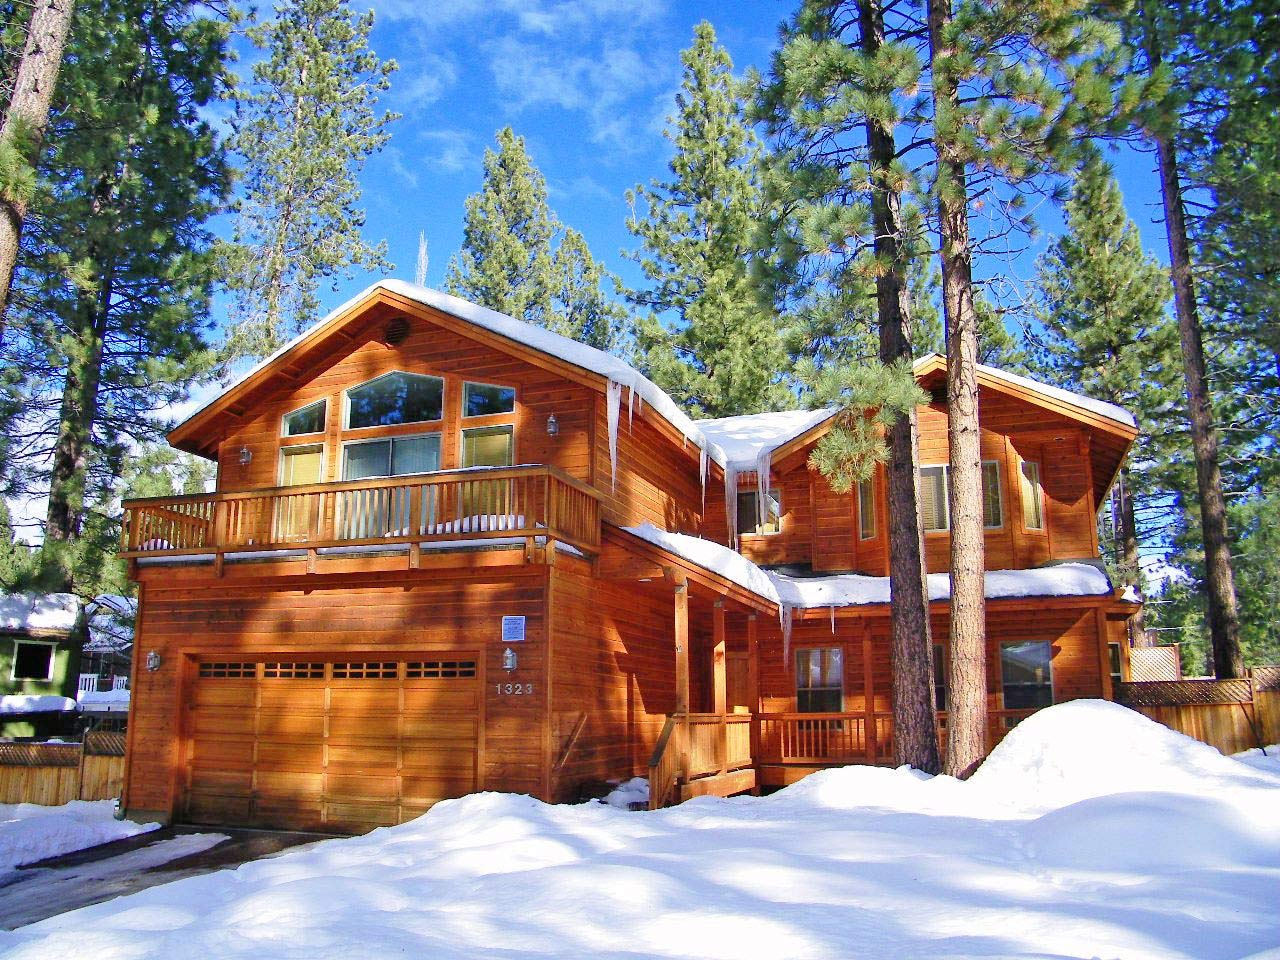 Wonderful 3 bedroom home with hot tub ra744 redawning for Tahoe city cabin rentals